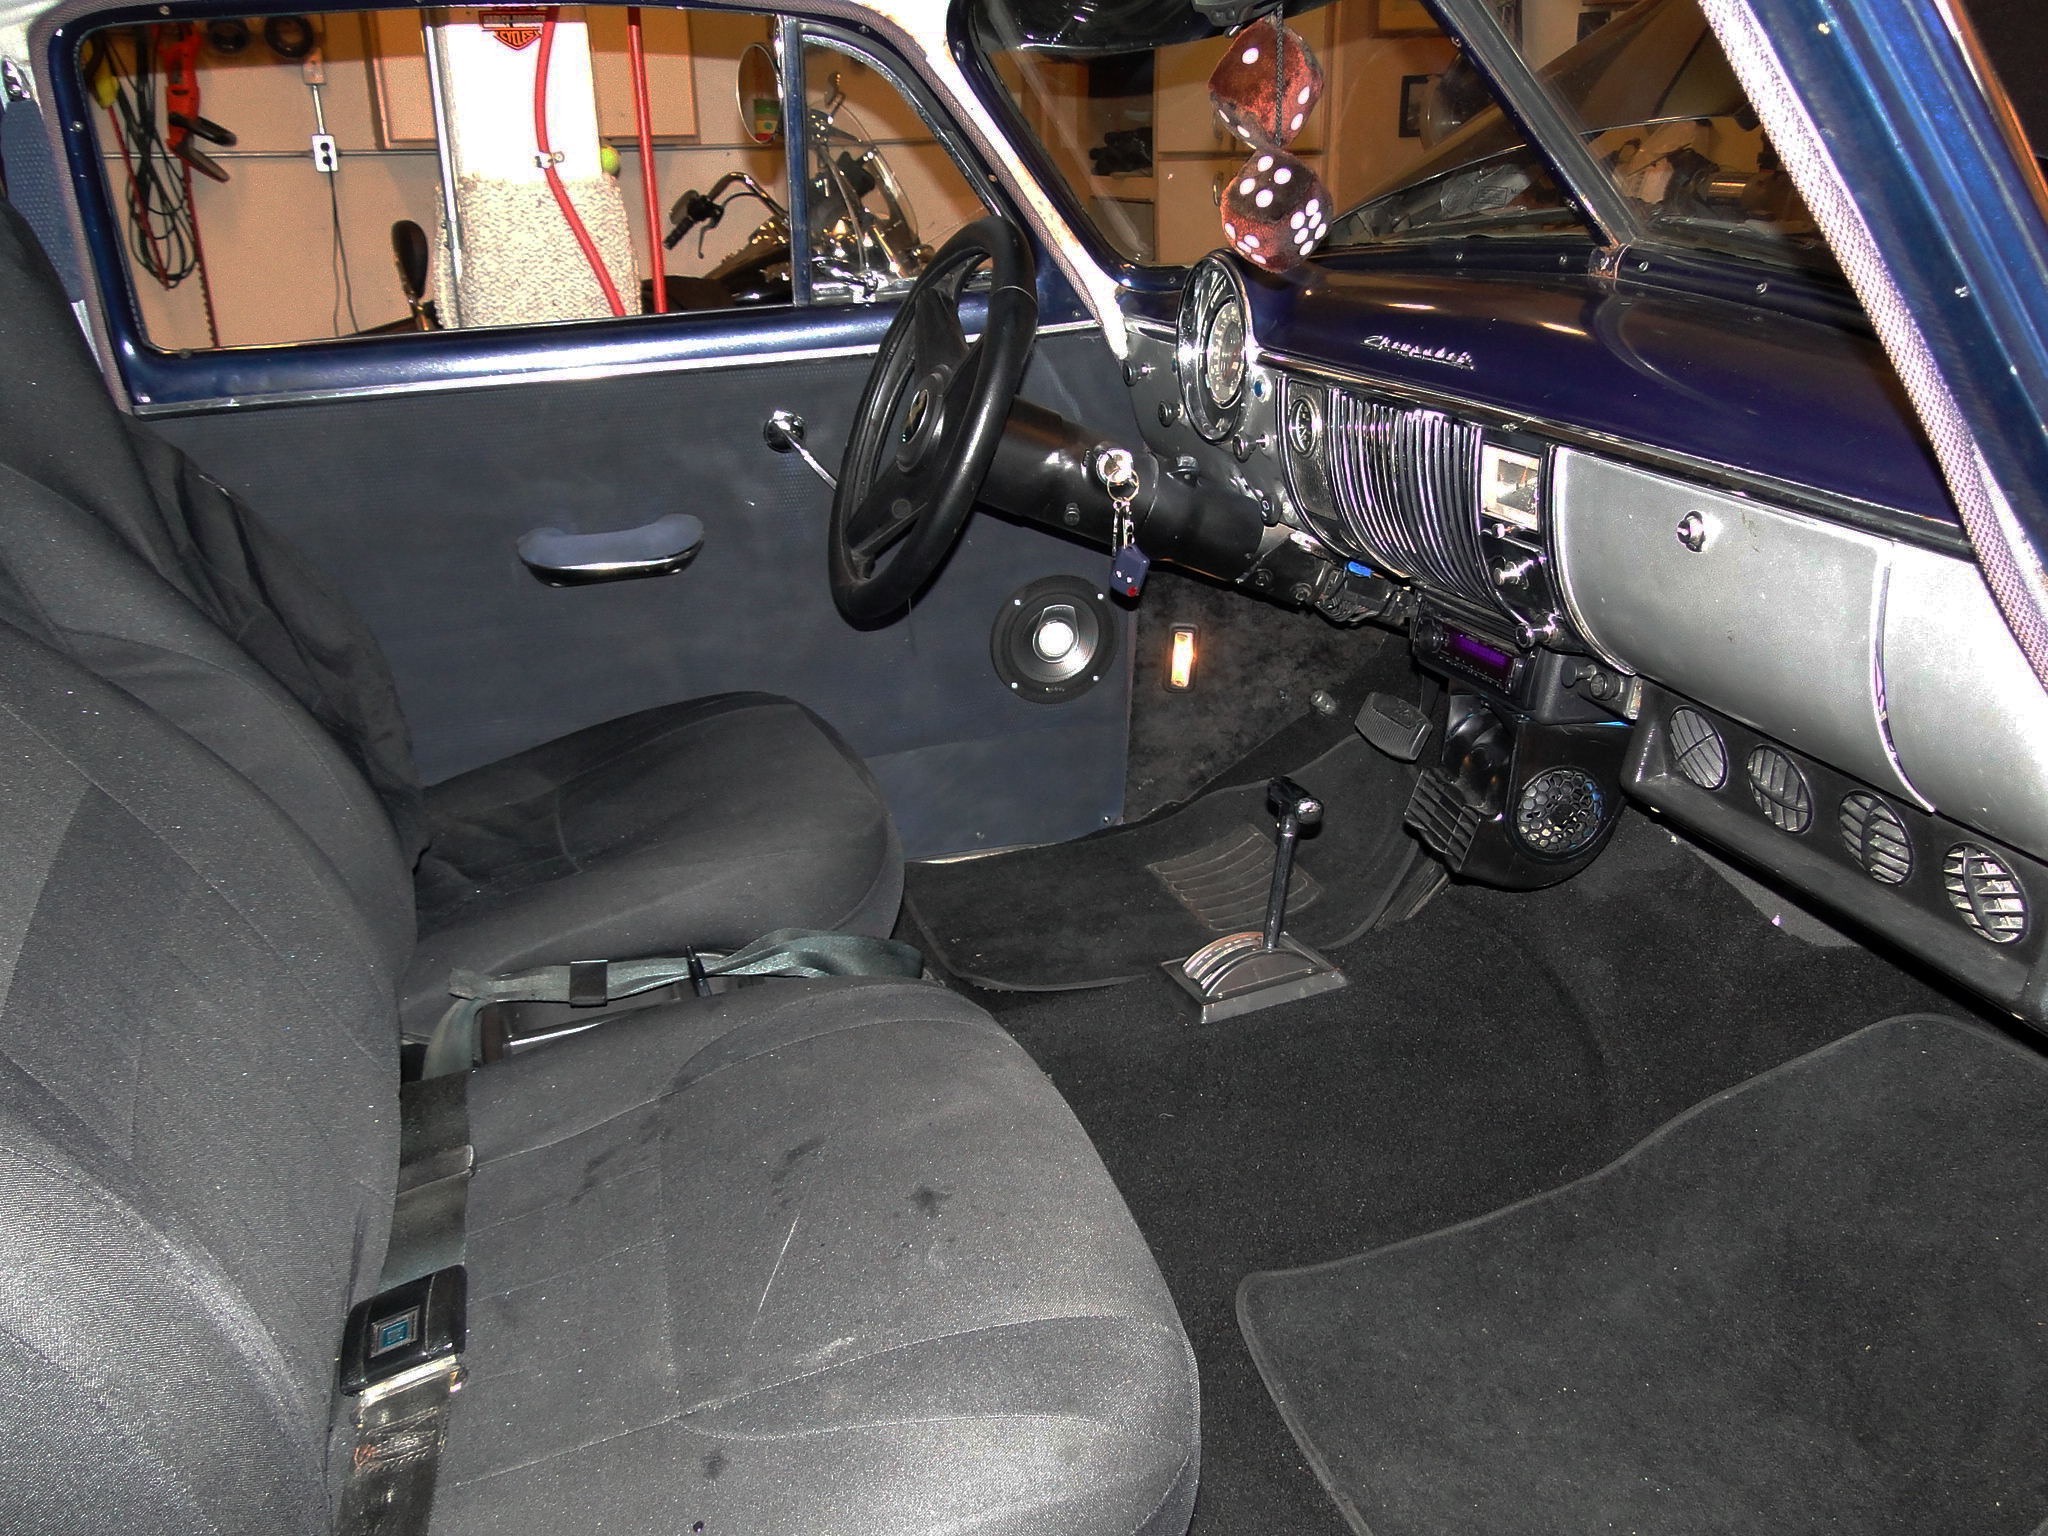 1950 Chevy Fleetline interior